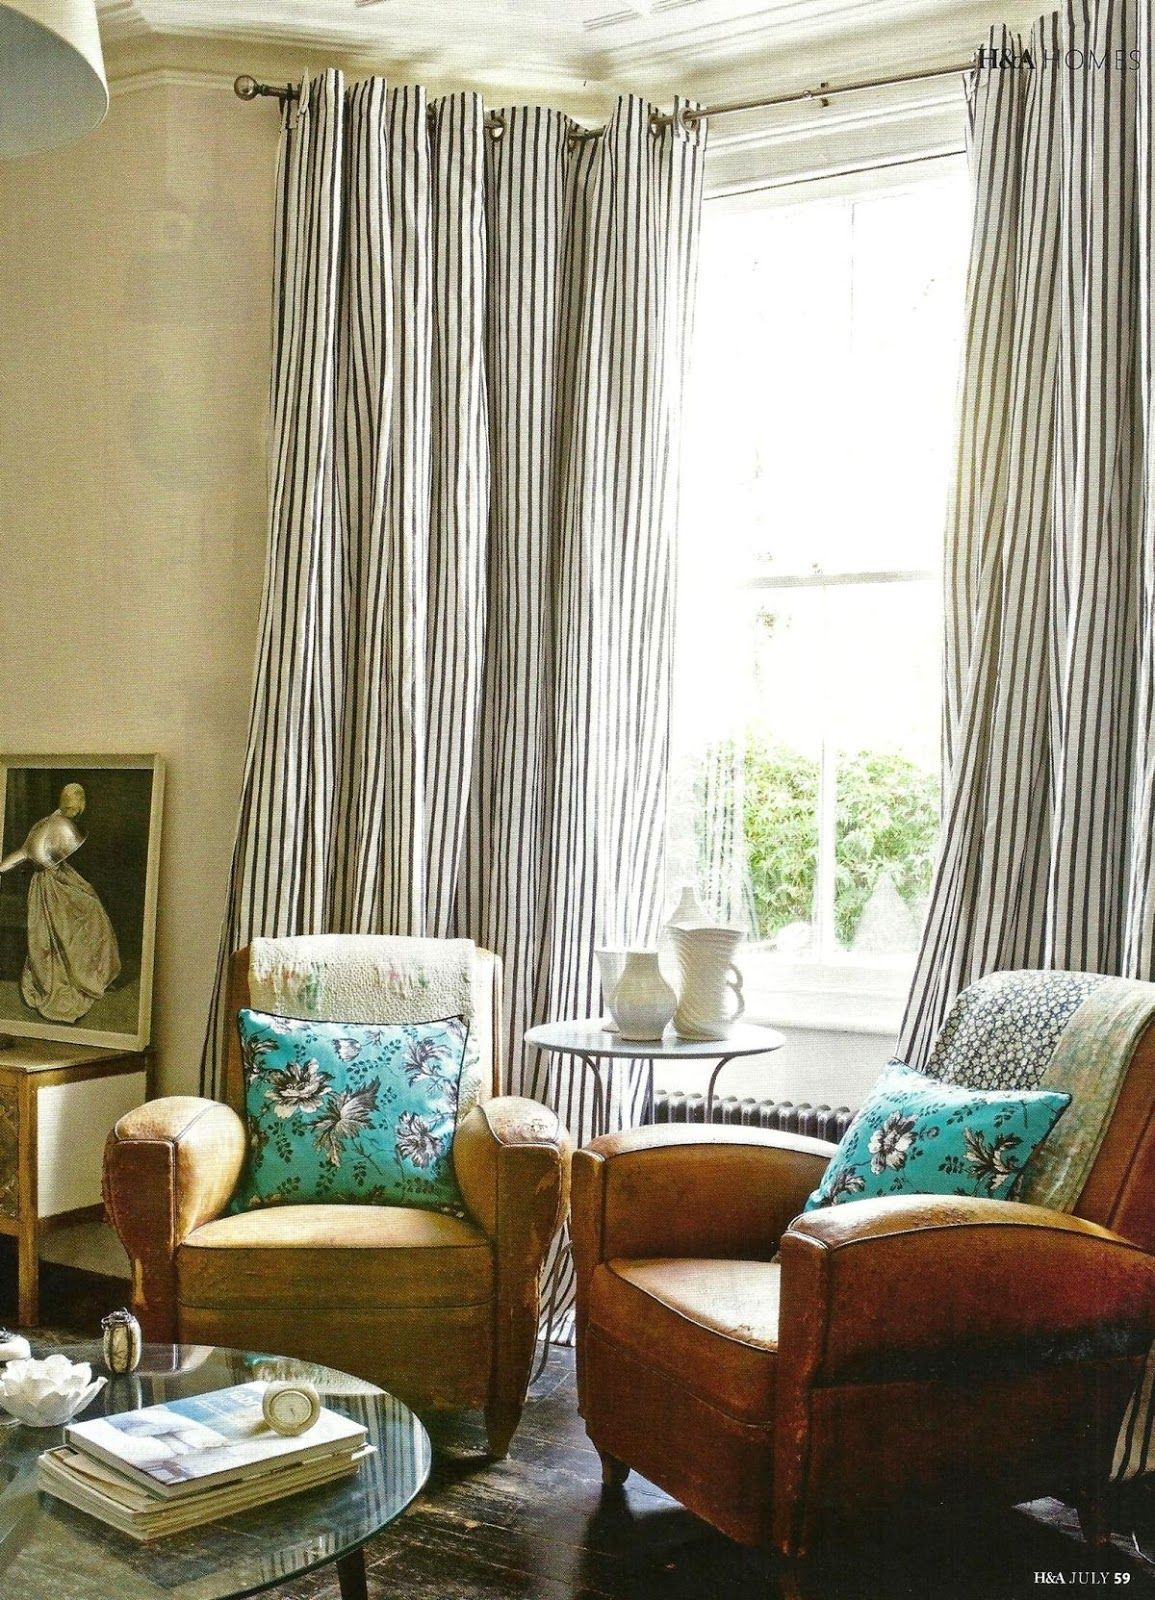 She Moves The Furniture Stripe Curtains Living Room Home Living Room Curtains Living Room #striped #curtains #living #room